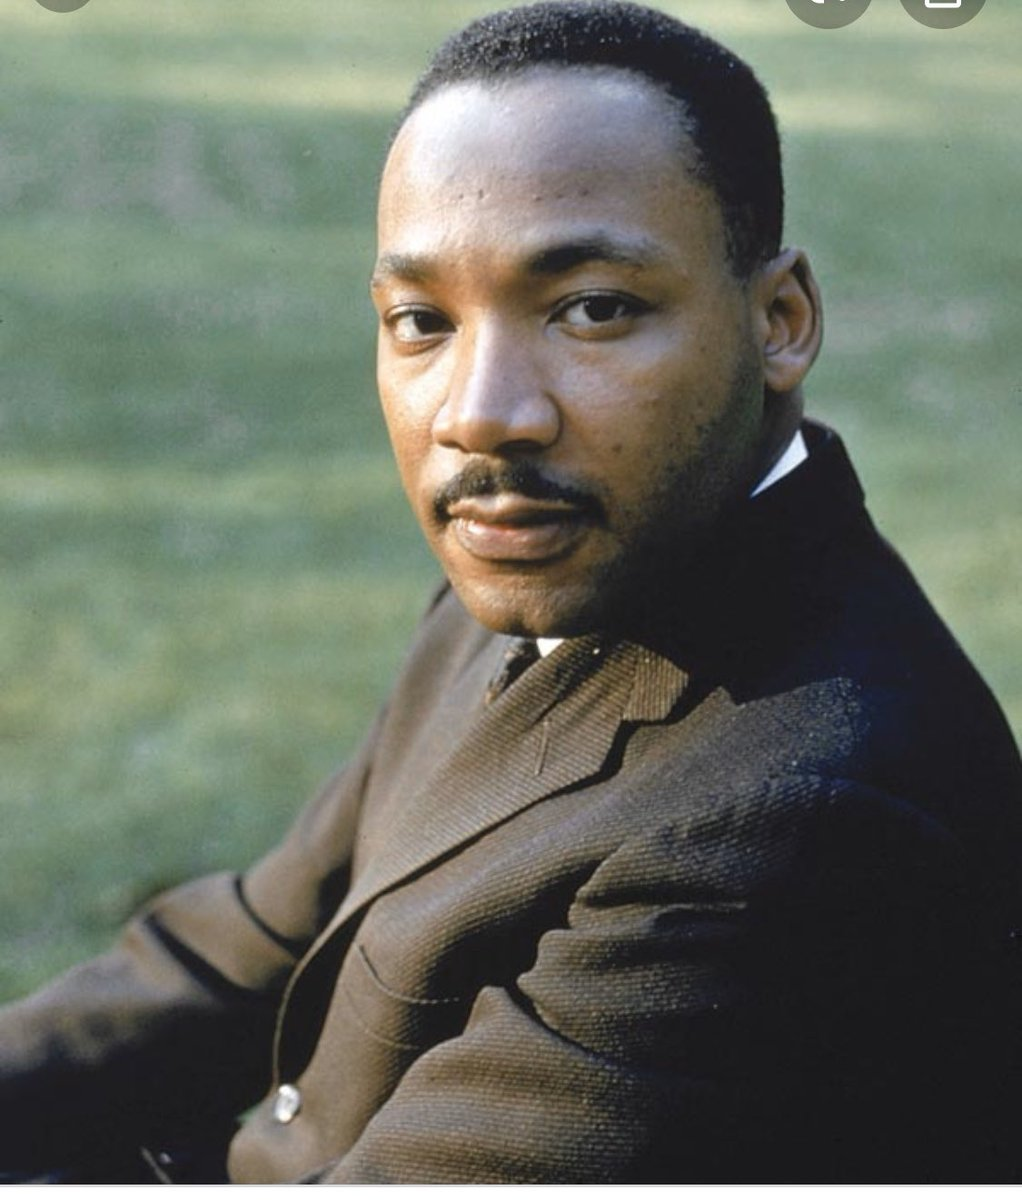 Today we celebrate the life and legacy of Dr. Martin Luther King Jr., and continue his Dream.<br>http://pic.twitter.com/lDbgssSiSI